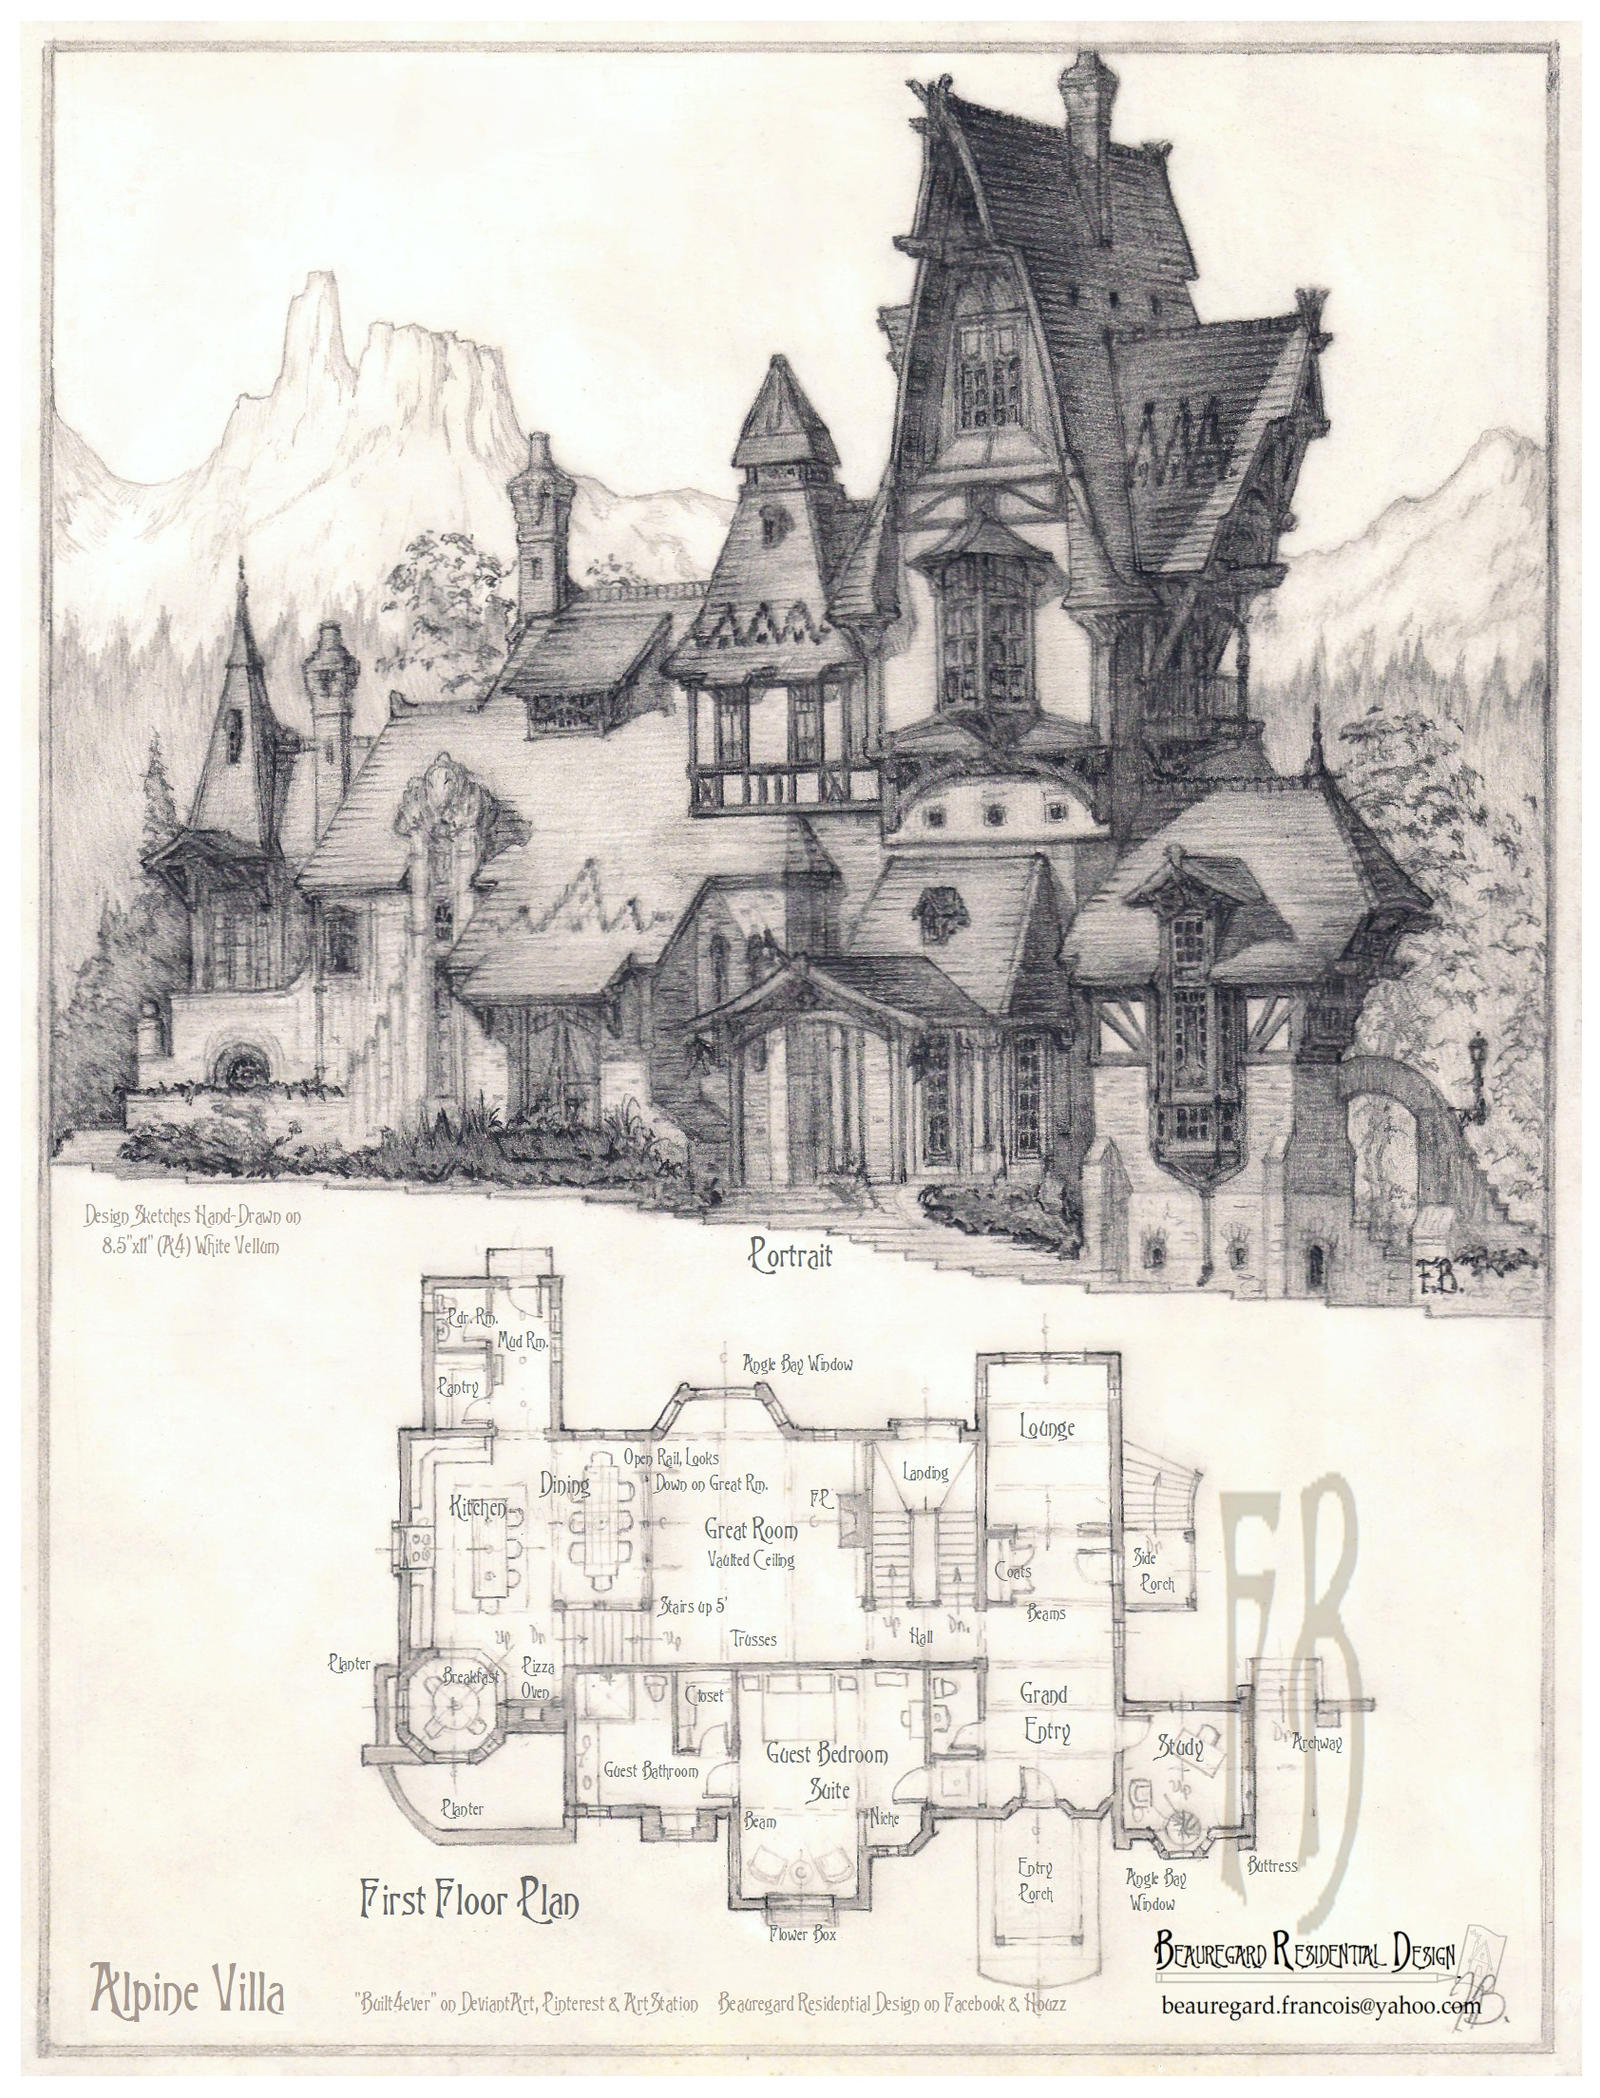 Portrait of house number 500 by built4ever on deviantart for House sketches from photos